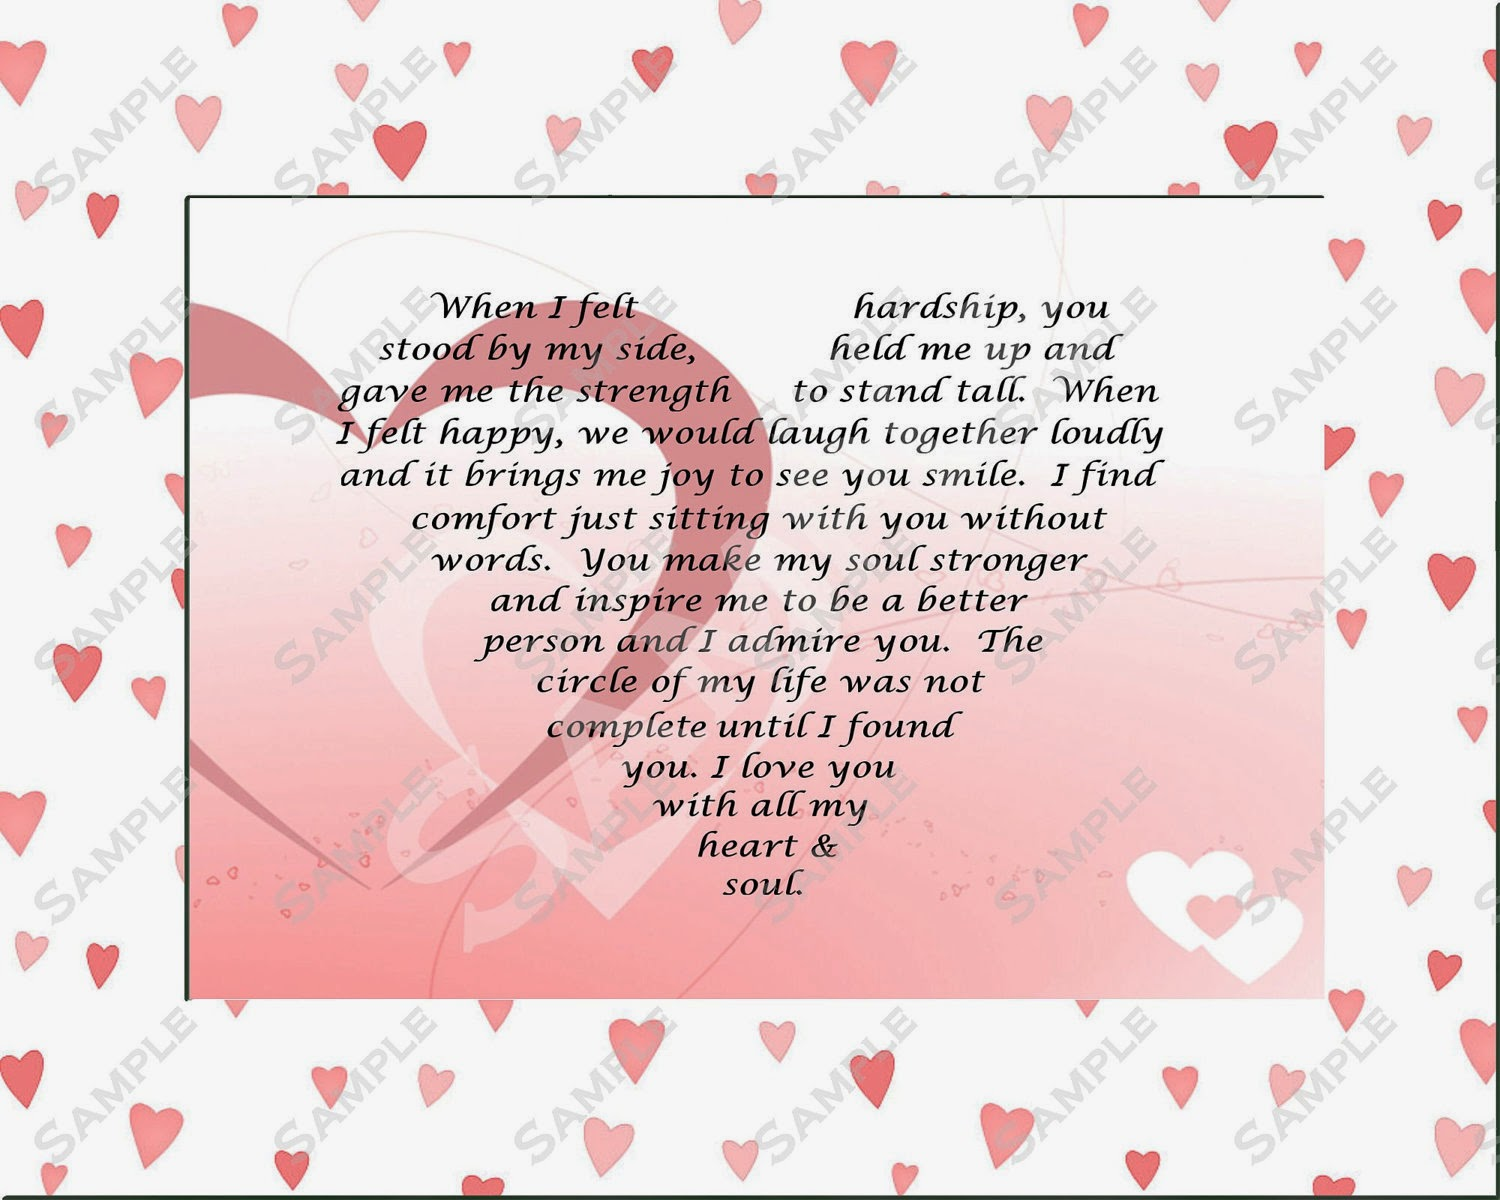 Funny Vlentines Day Cards Tumblr Day Quotes Pictures Day Poems Day – Valentine Cards Poems